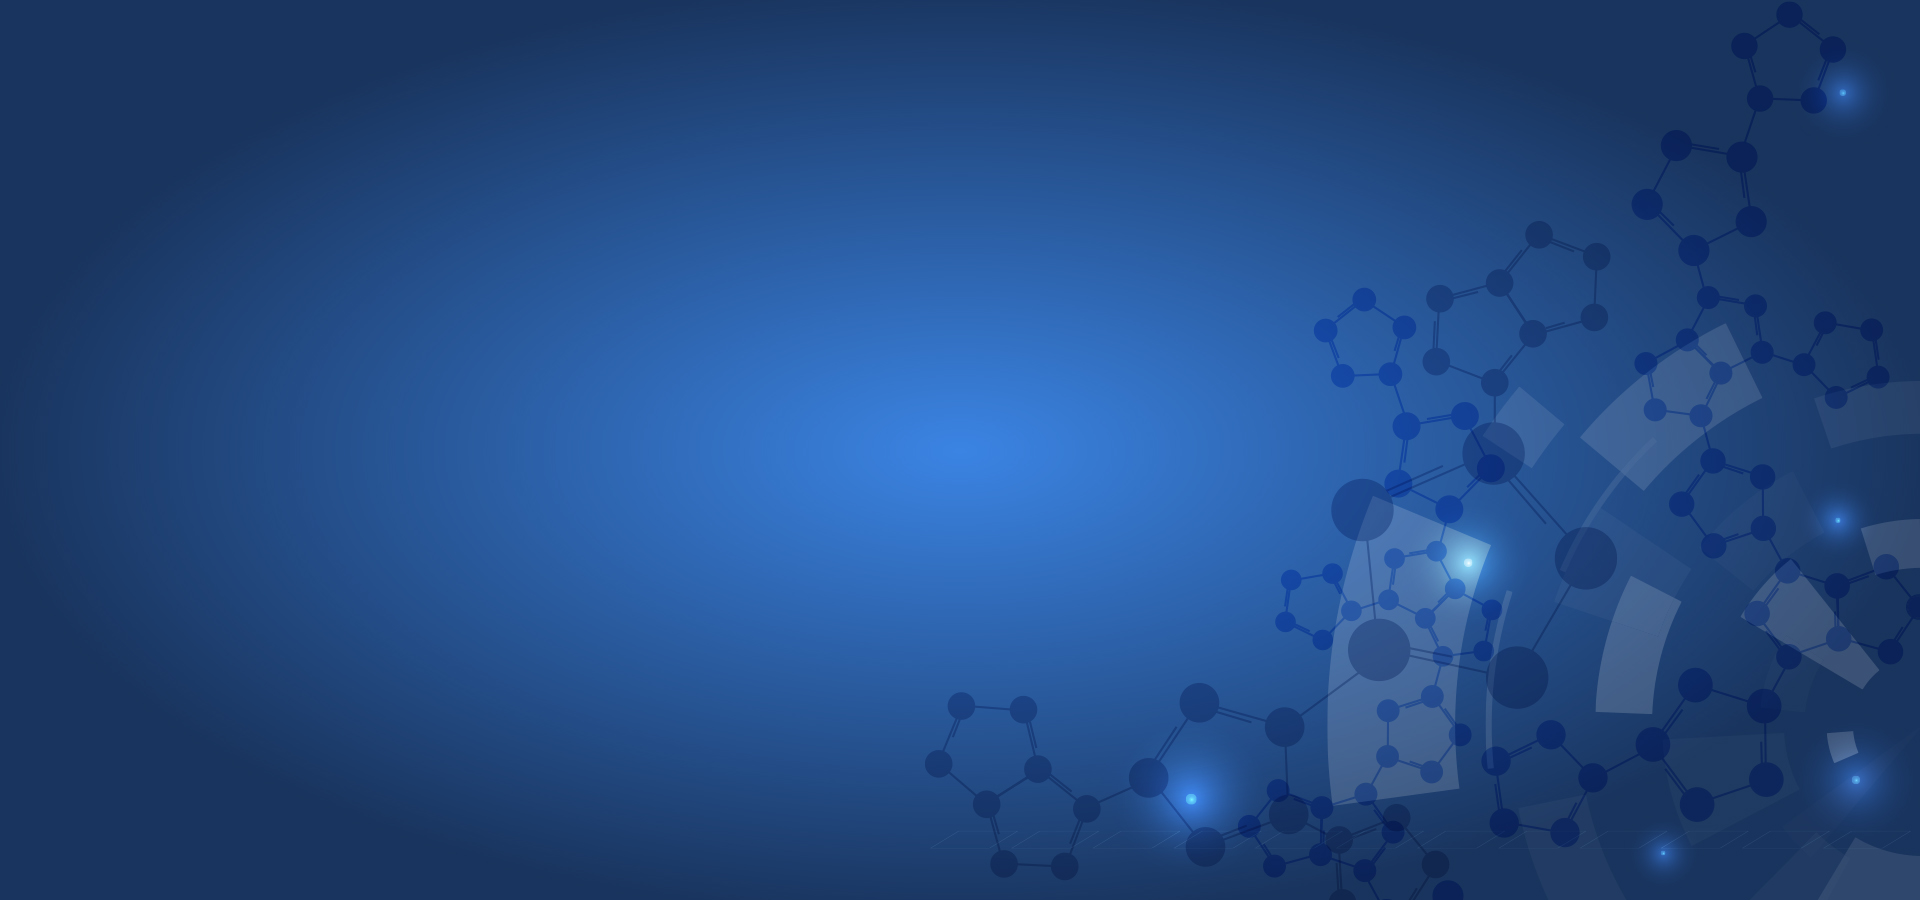 science large blue background  science  technology